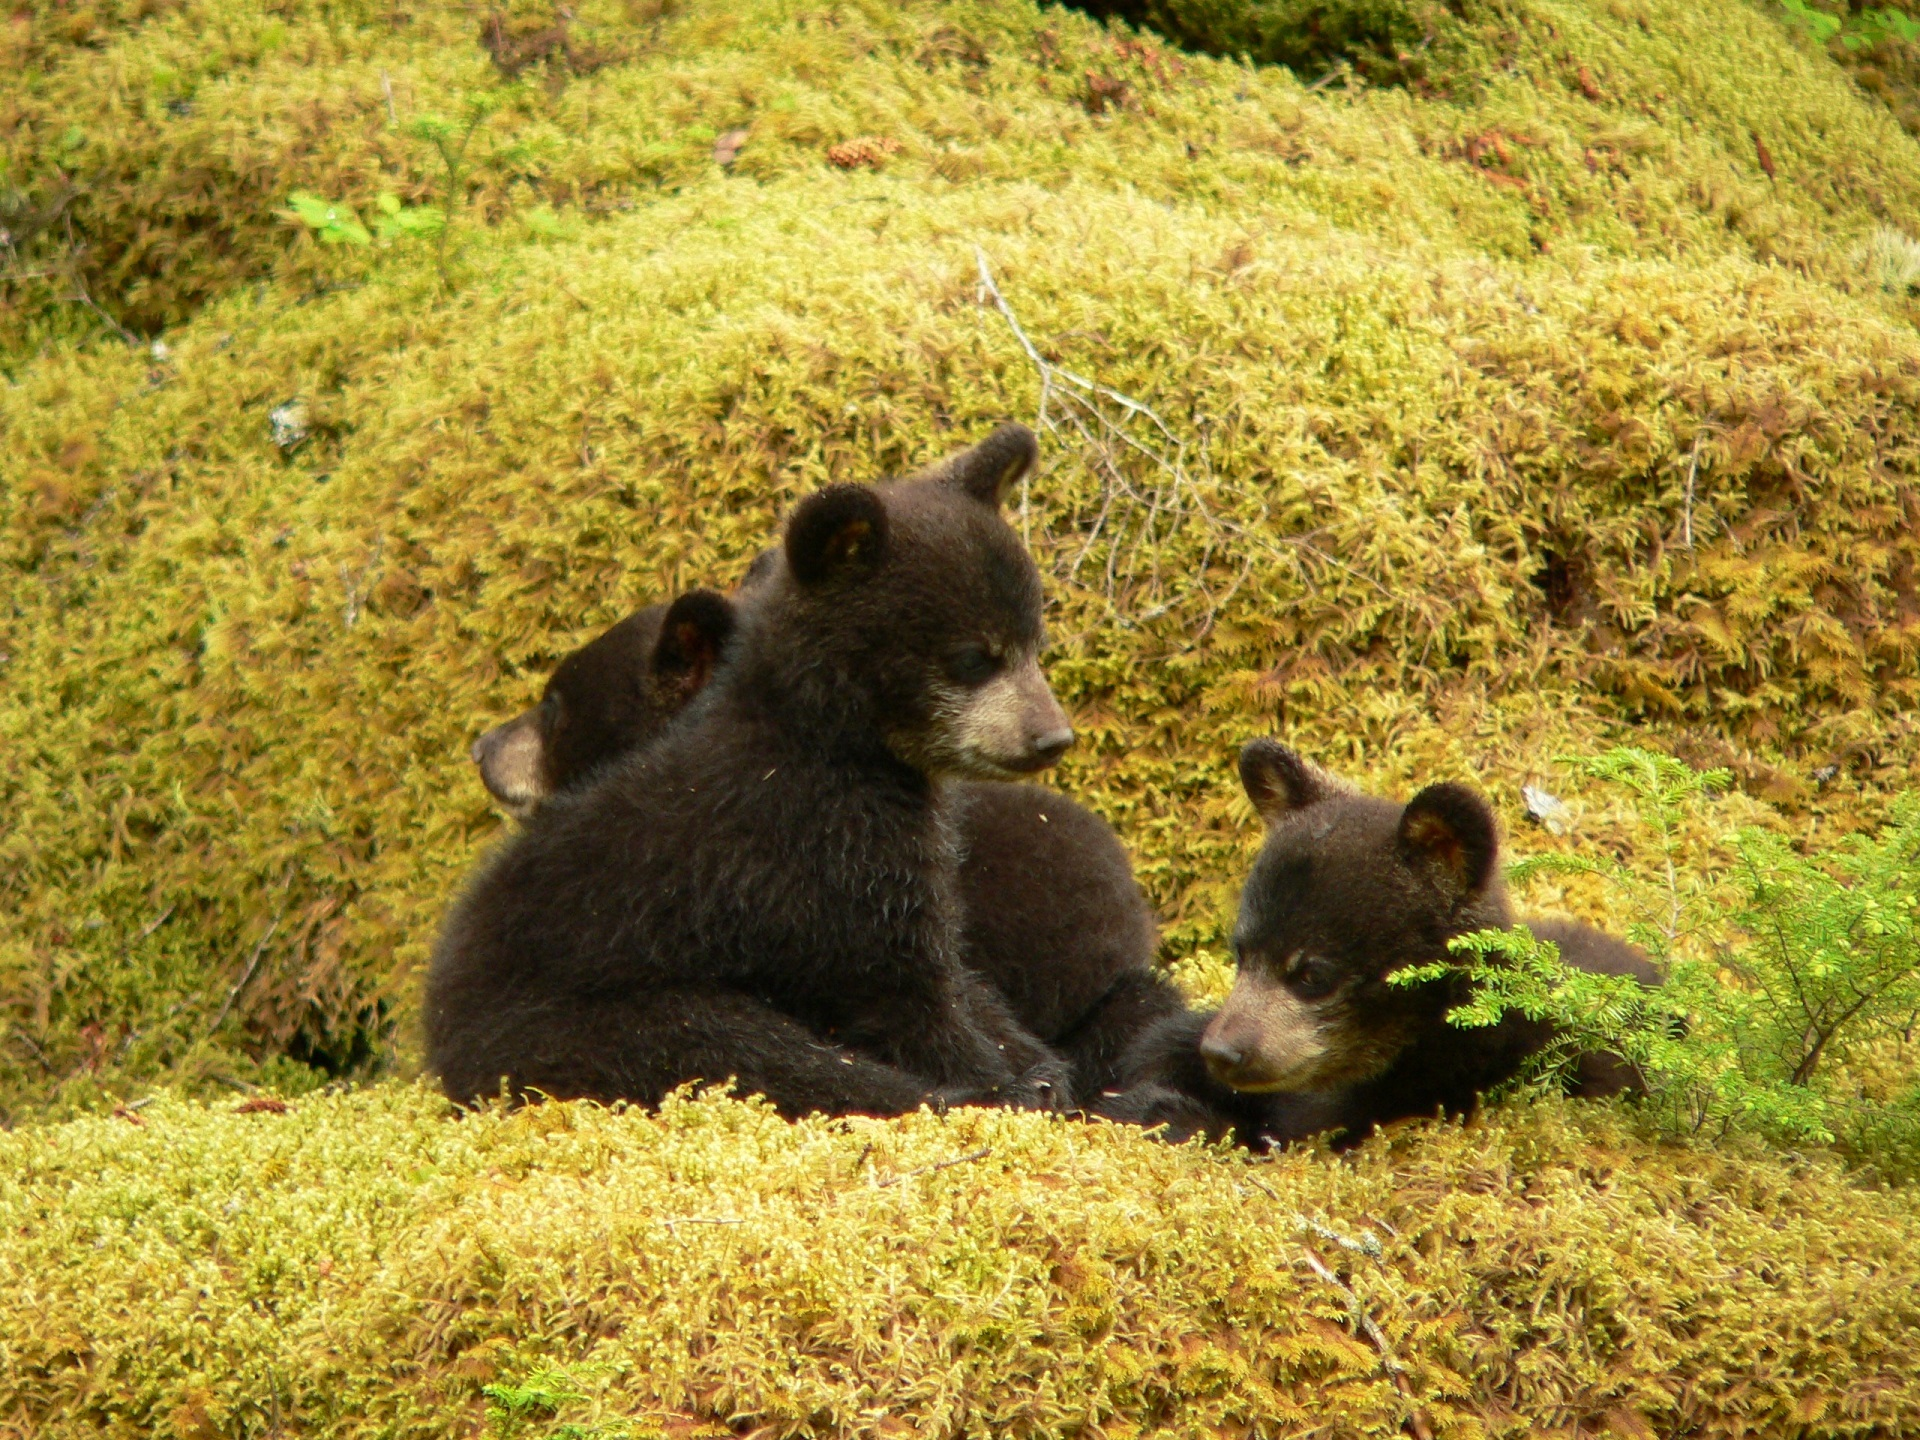 Baby black bears playing